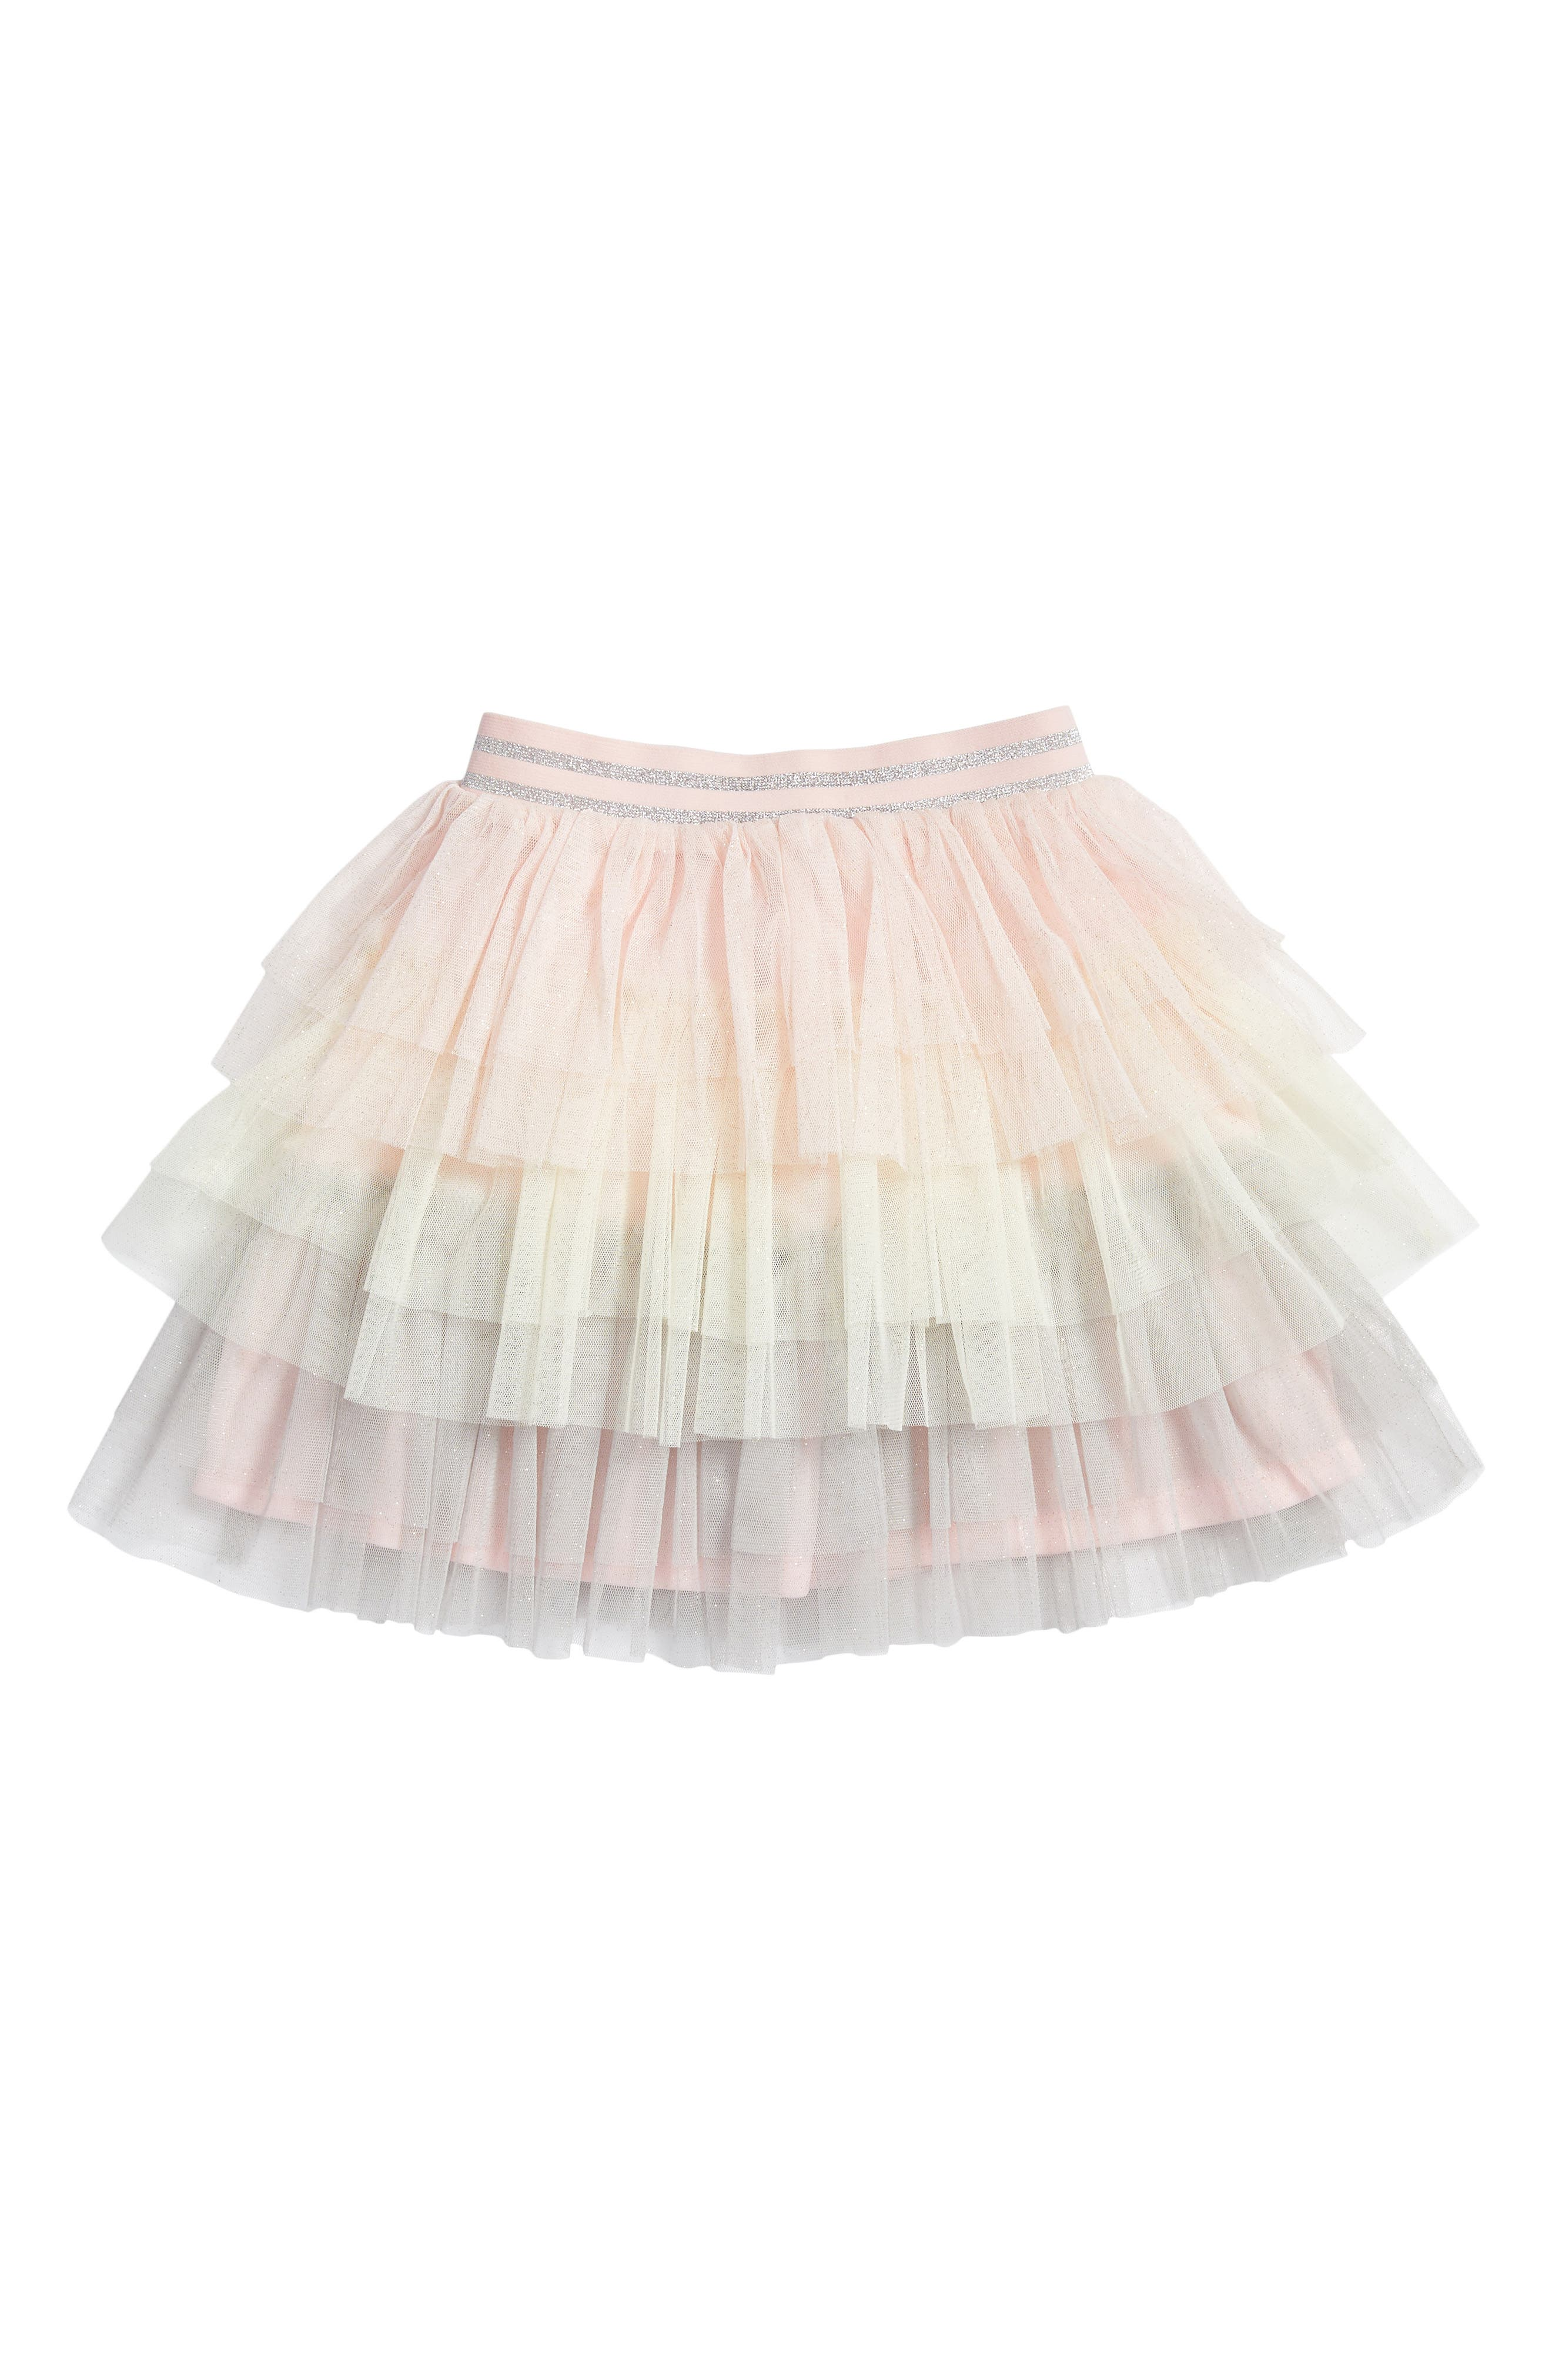 Truly Me Tiered Tutu Skirt (Toddler Girls & Little Girls)